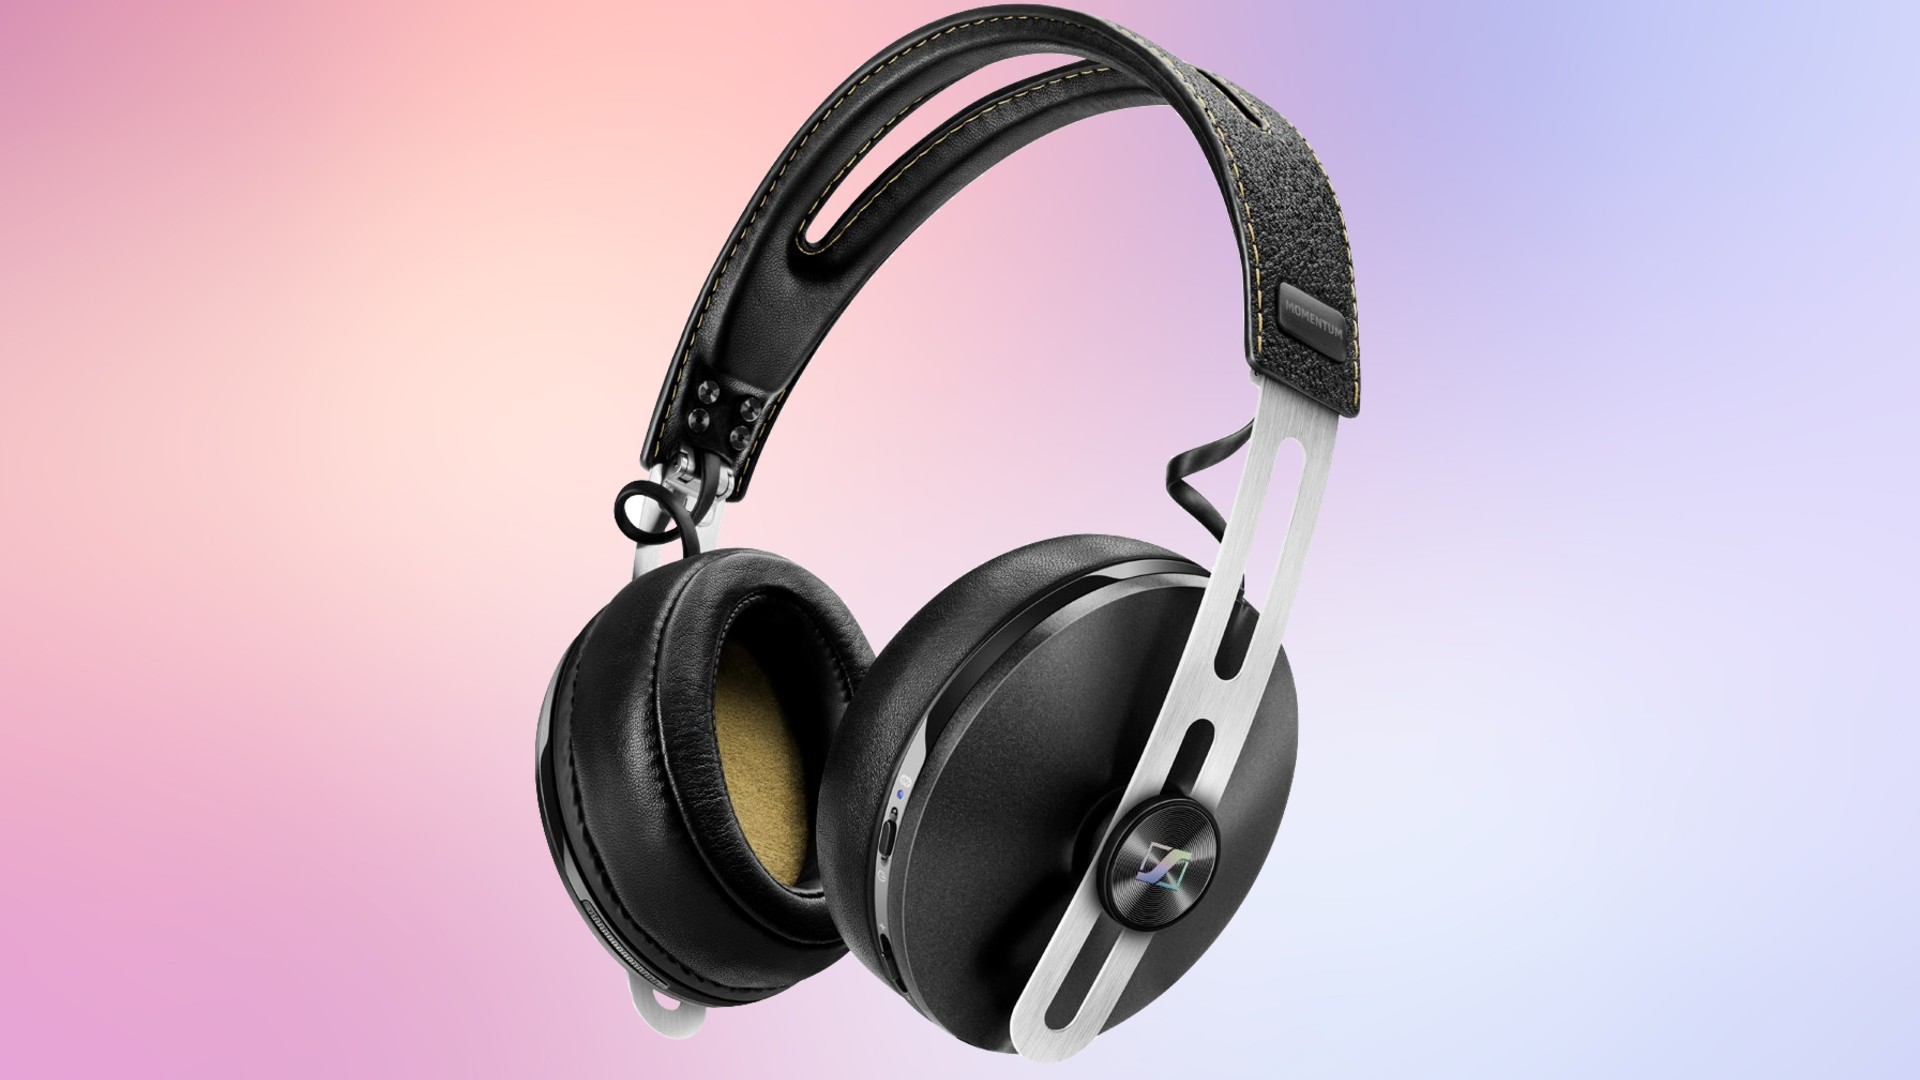 Sennheiser Momentum 2 Wireless headphones are 50% off at Best Buy – but be quick